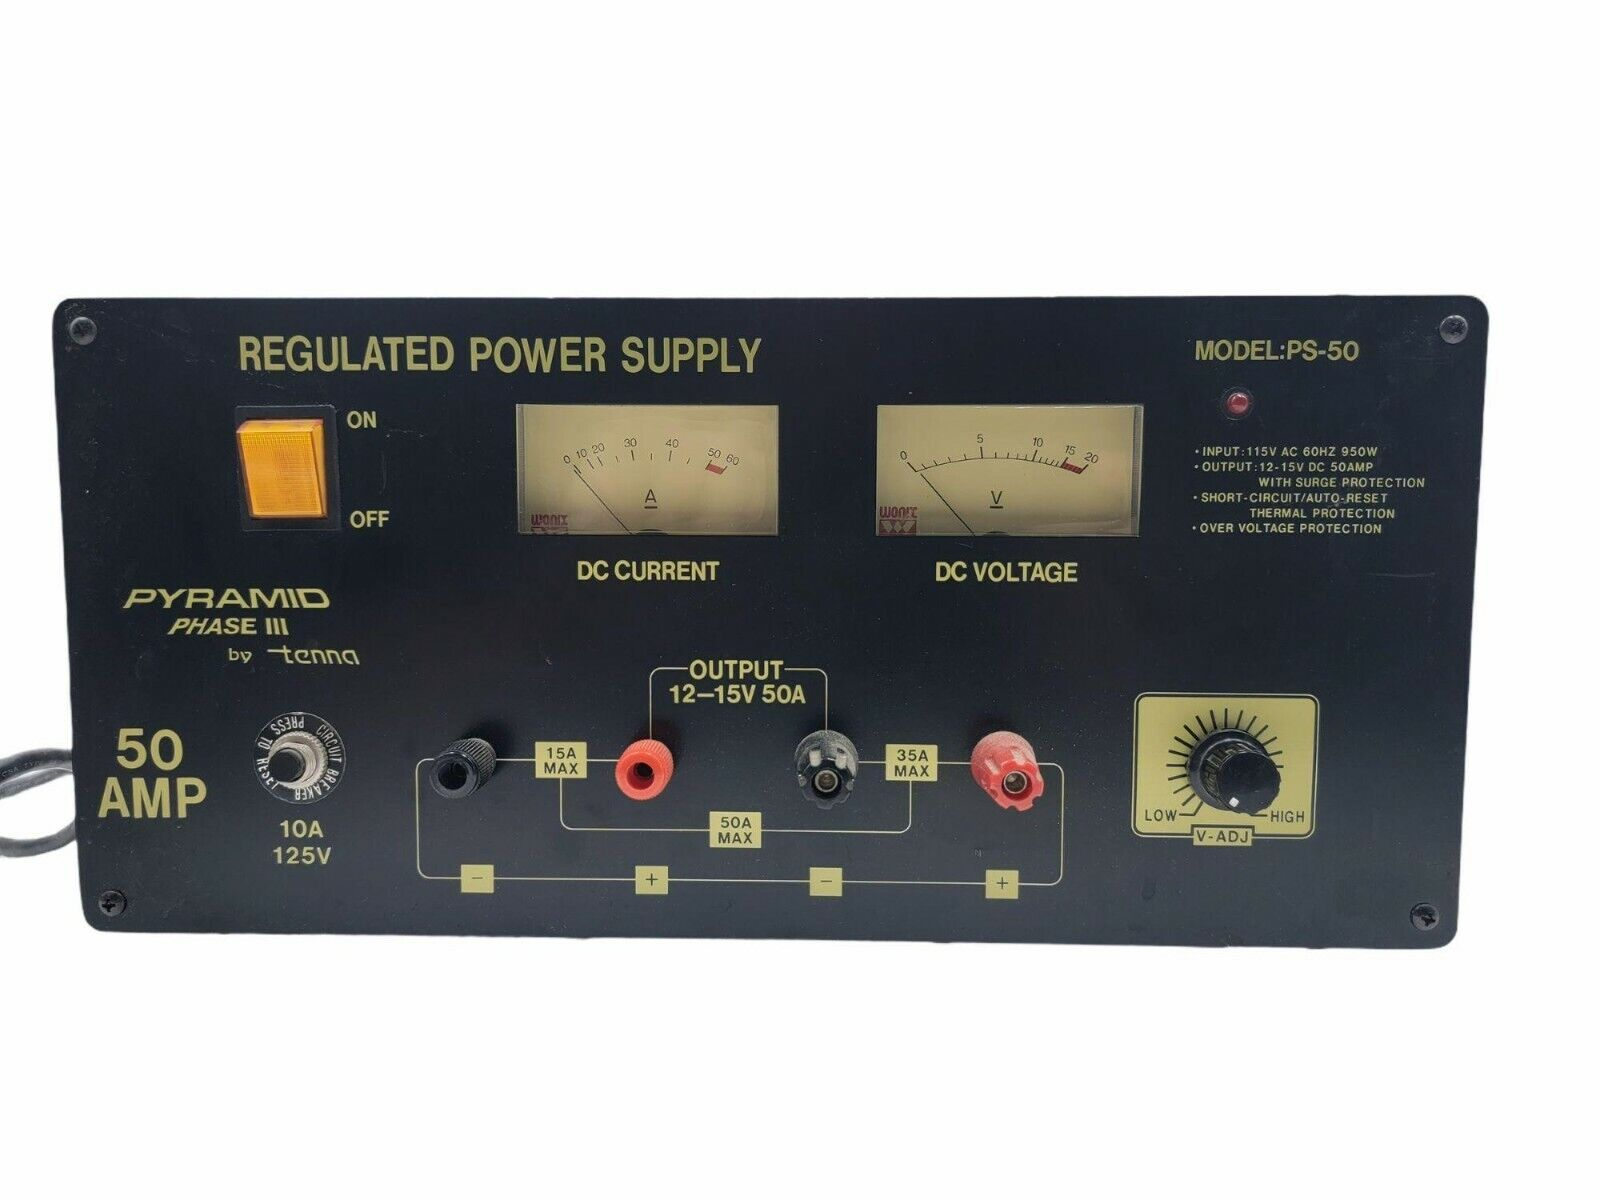 Tenna Pyramid Phase III PS-50 50 AMP Ham Radio Regulated Power Supply. Available Now for 190.00